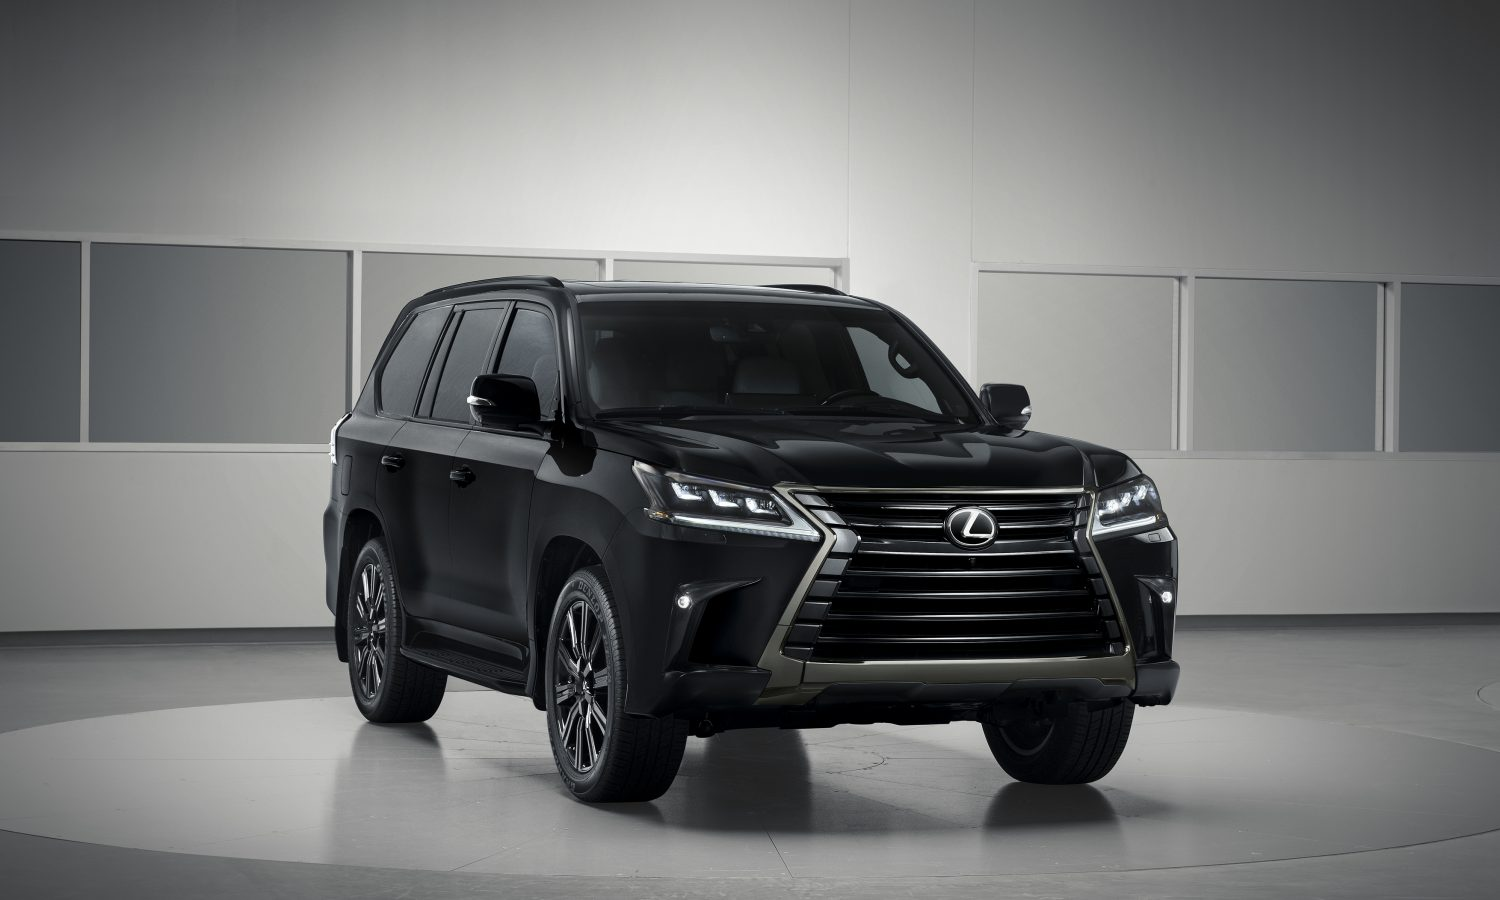 Lexus Inspires Drivers With Special Edition Suv Lexus Usa Newsroom